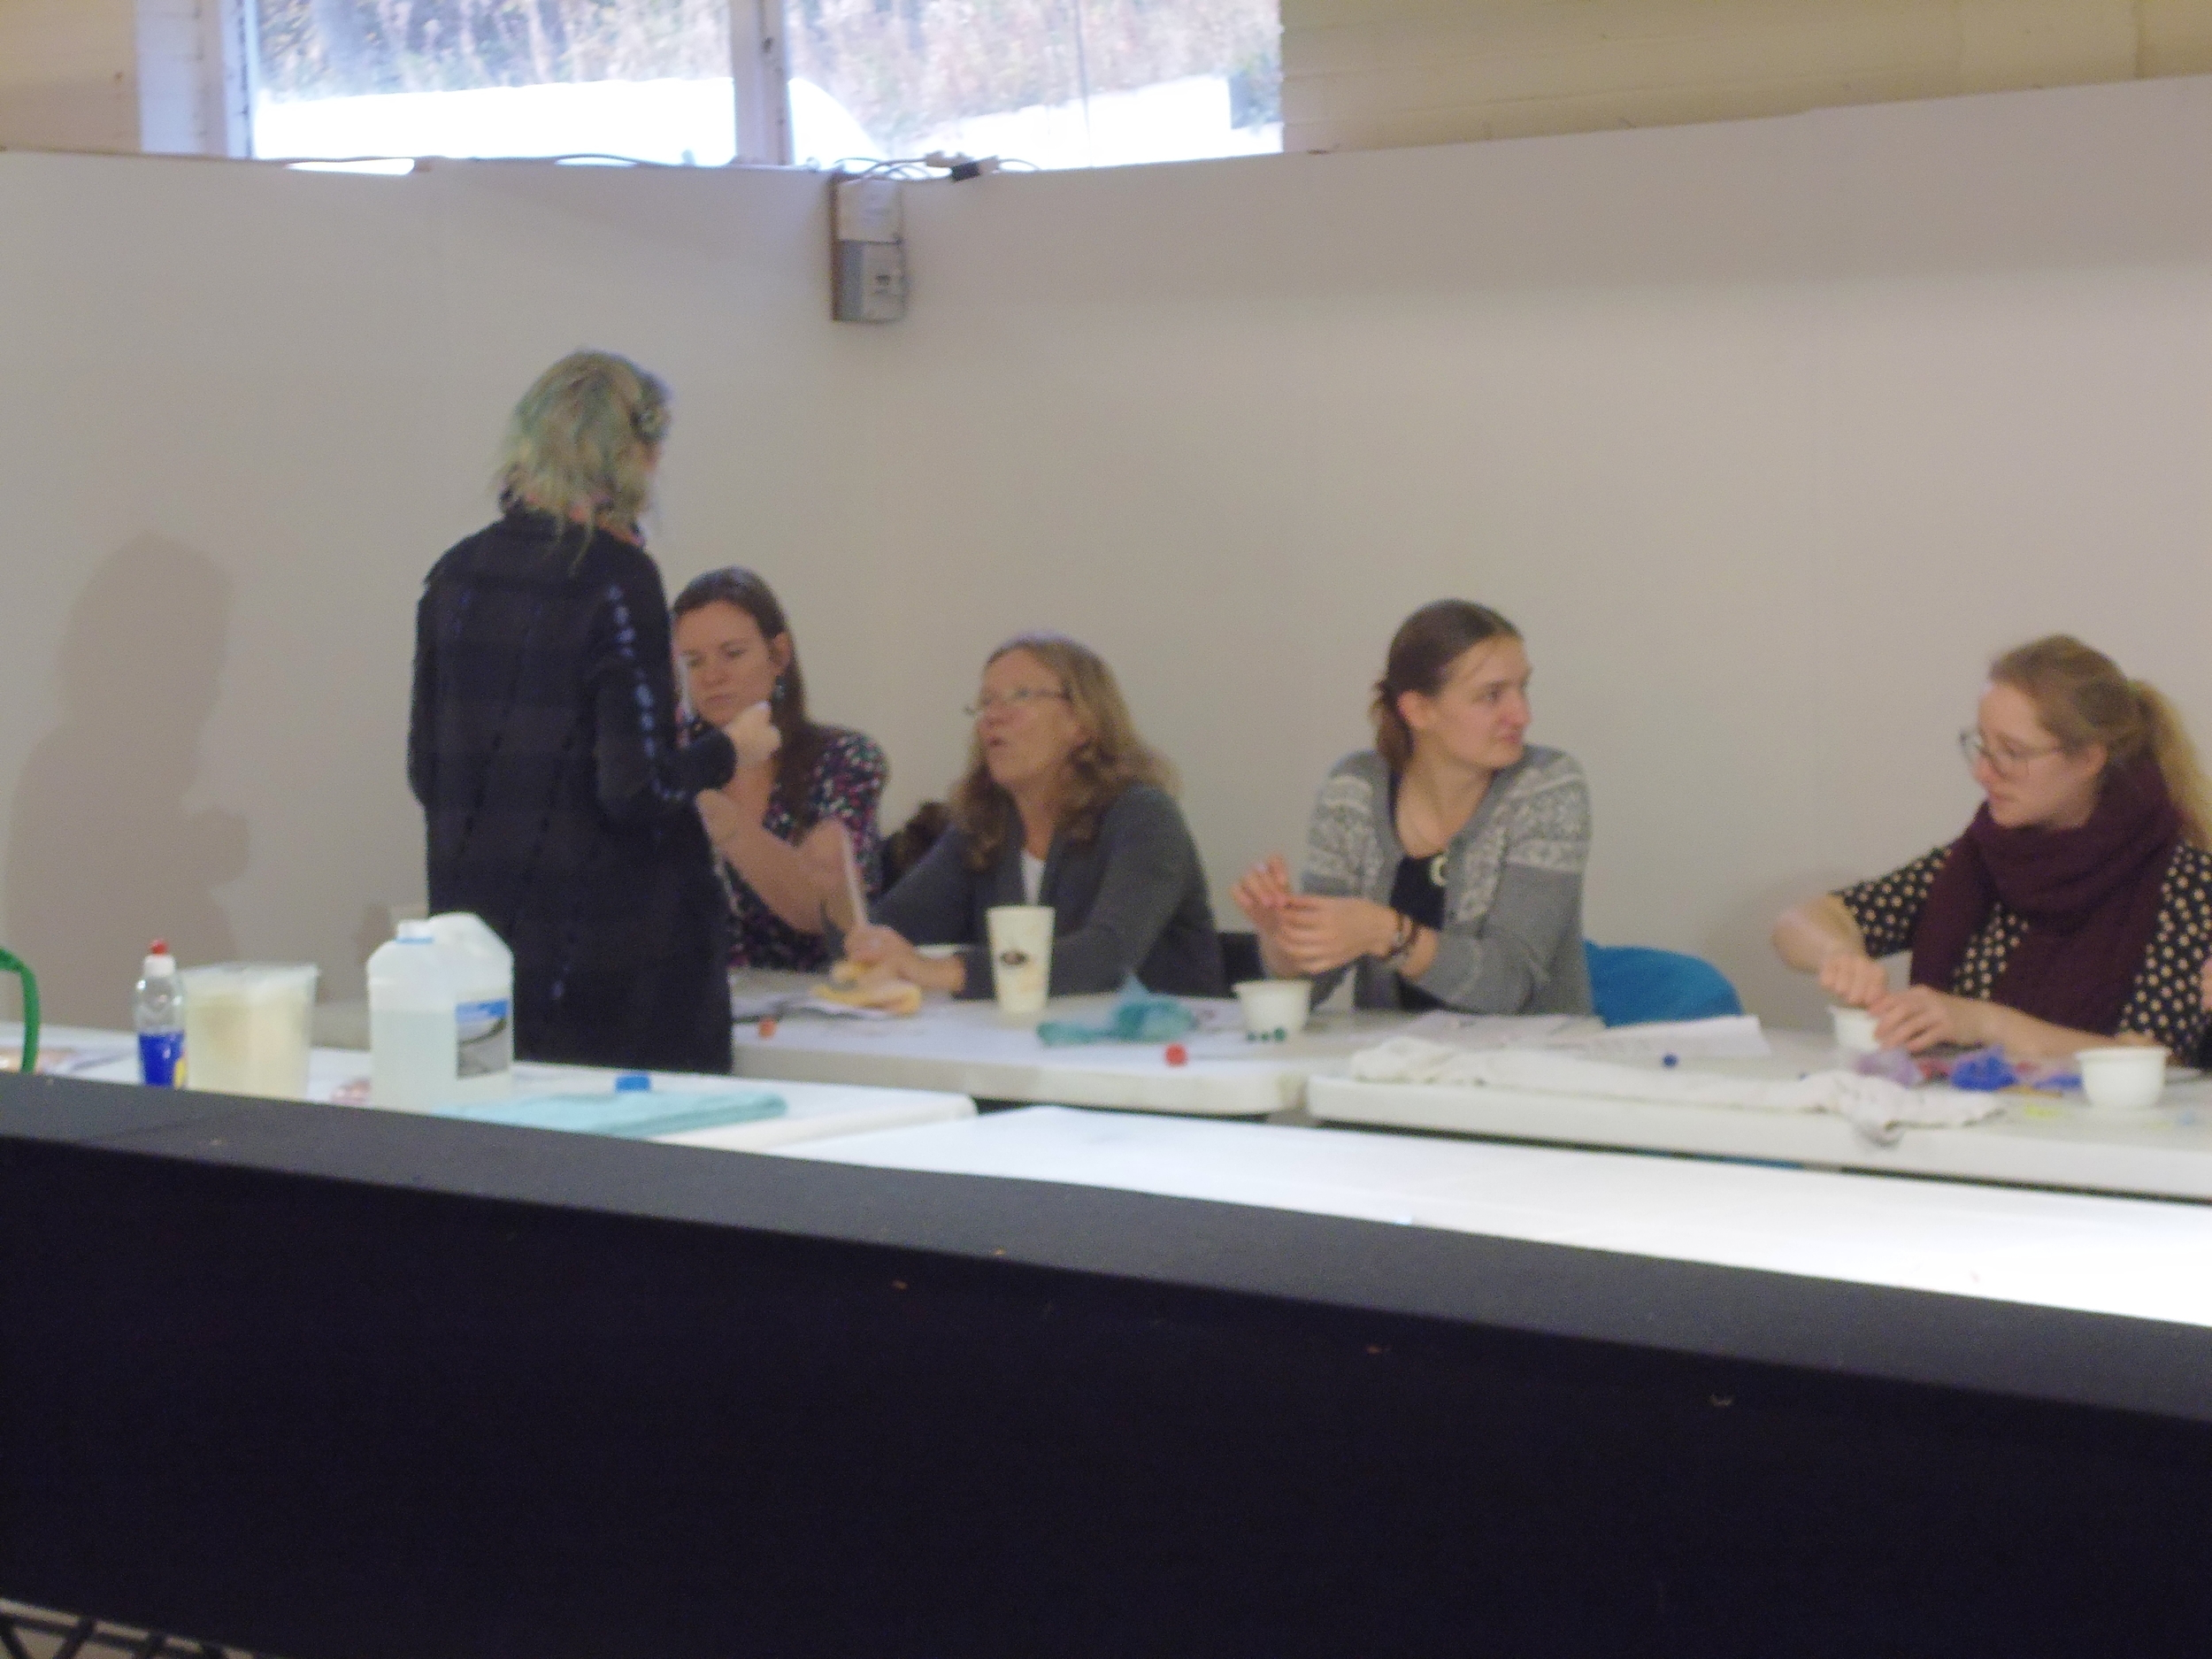 Teaching a felting workshop at The Knitting and Stitching show 2013